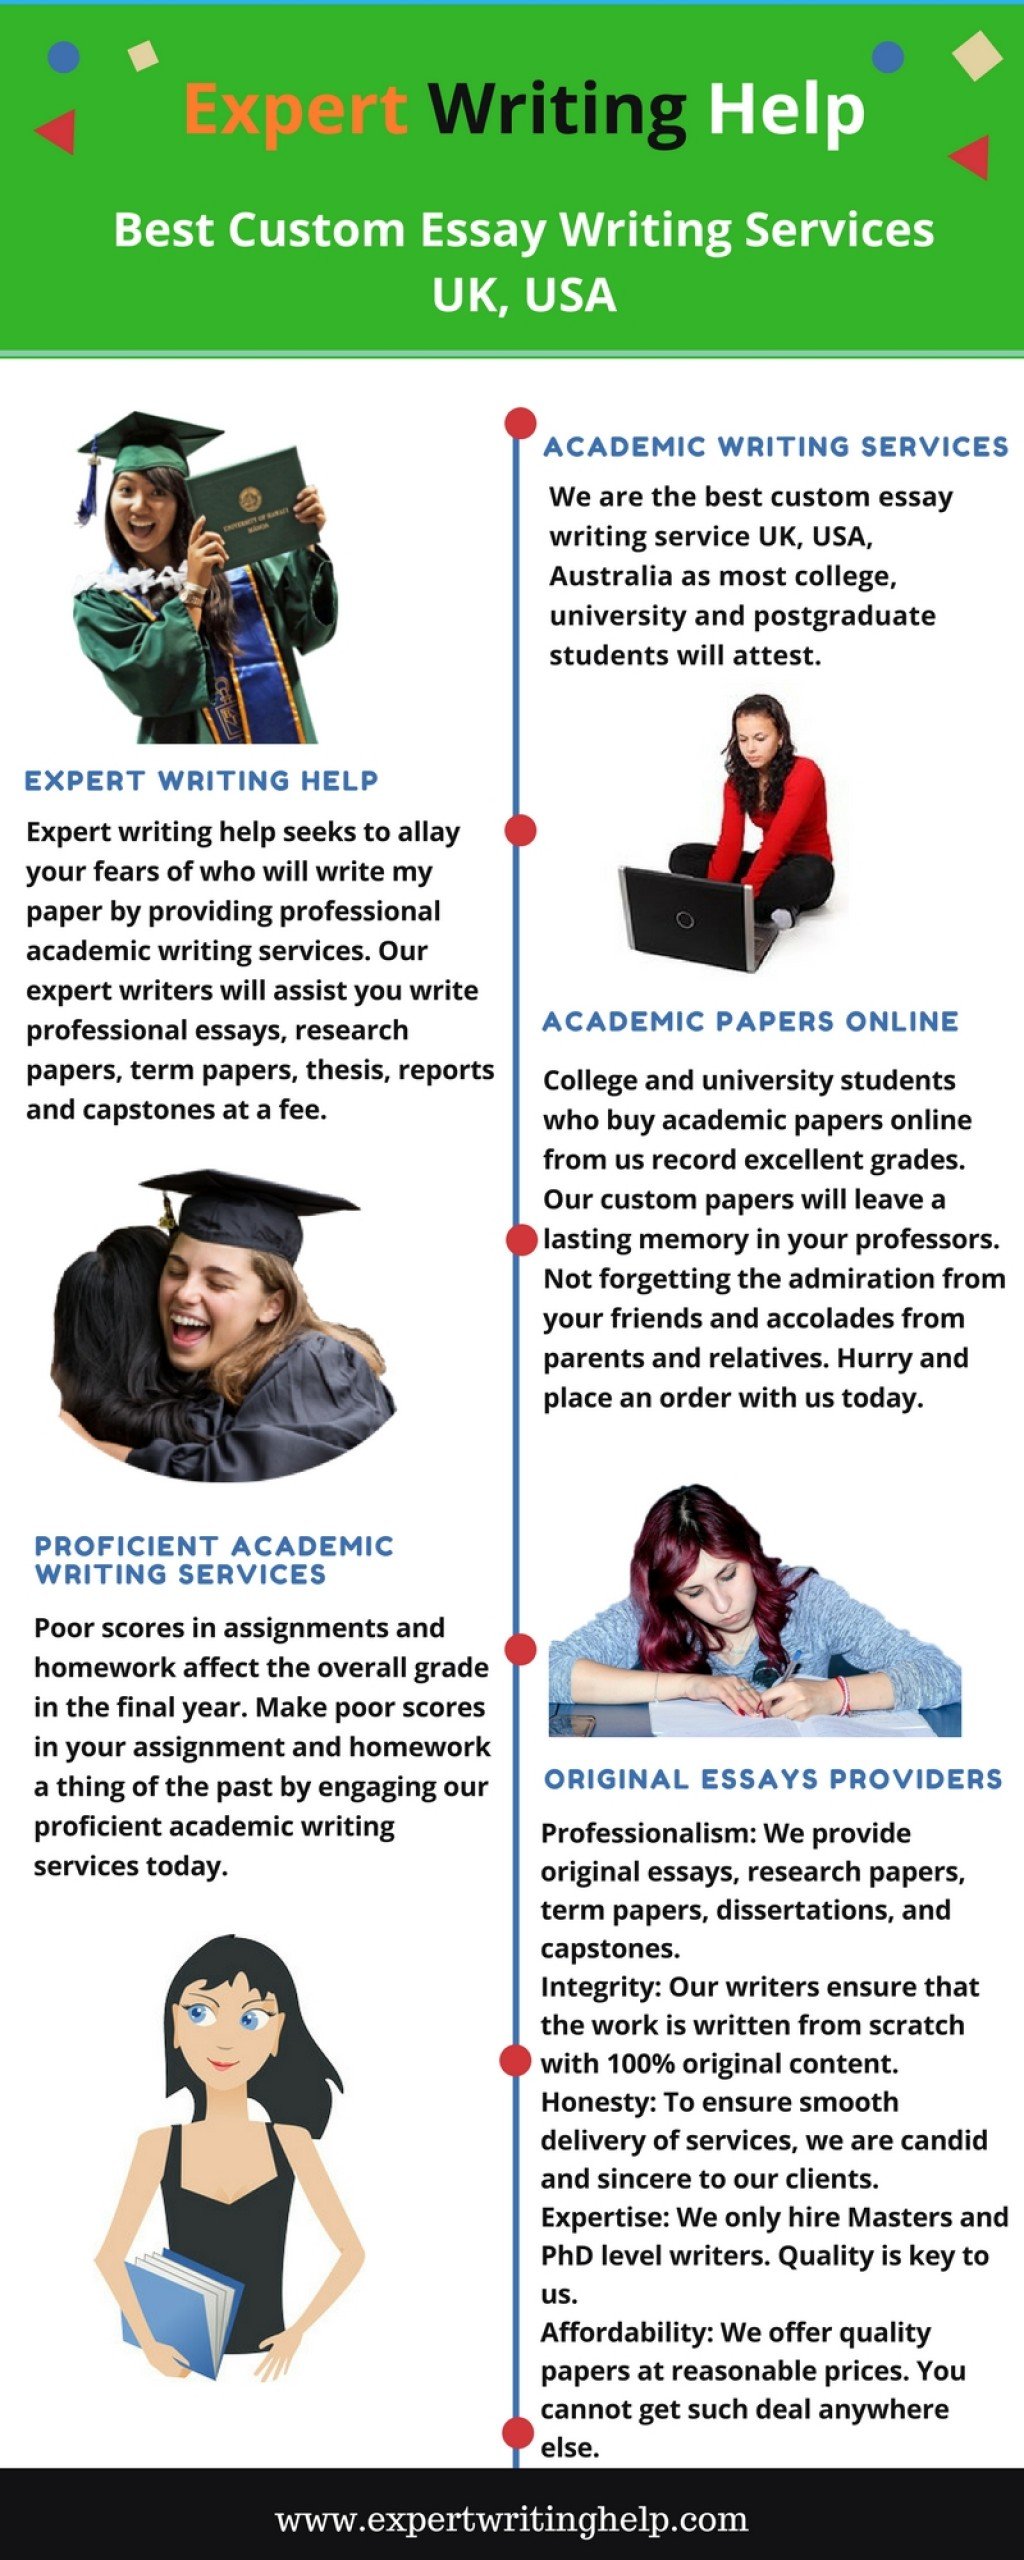 017 Custom Essay Writing Service 3191674139 Help Impressive Reviews In India Services Australia Large